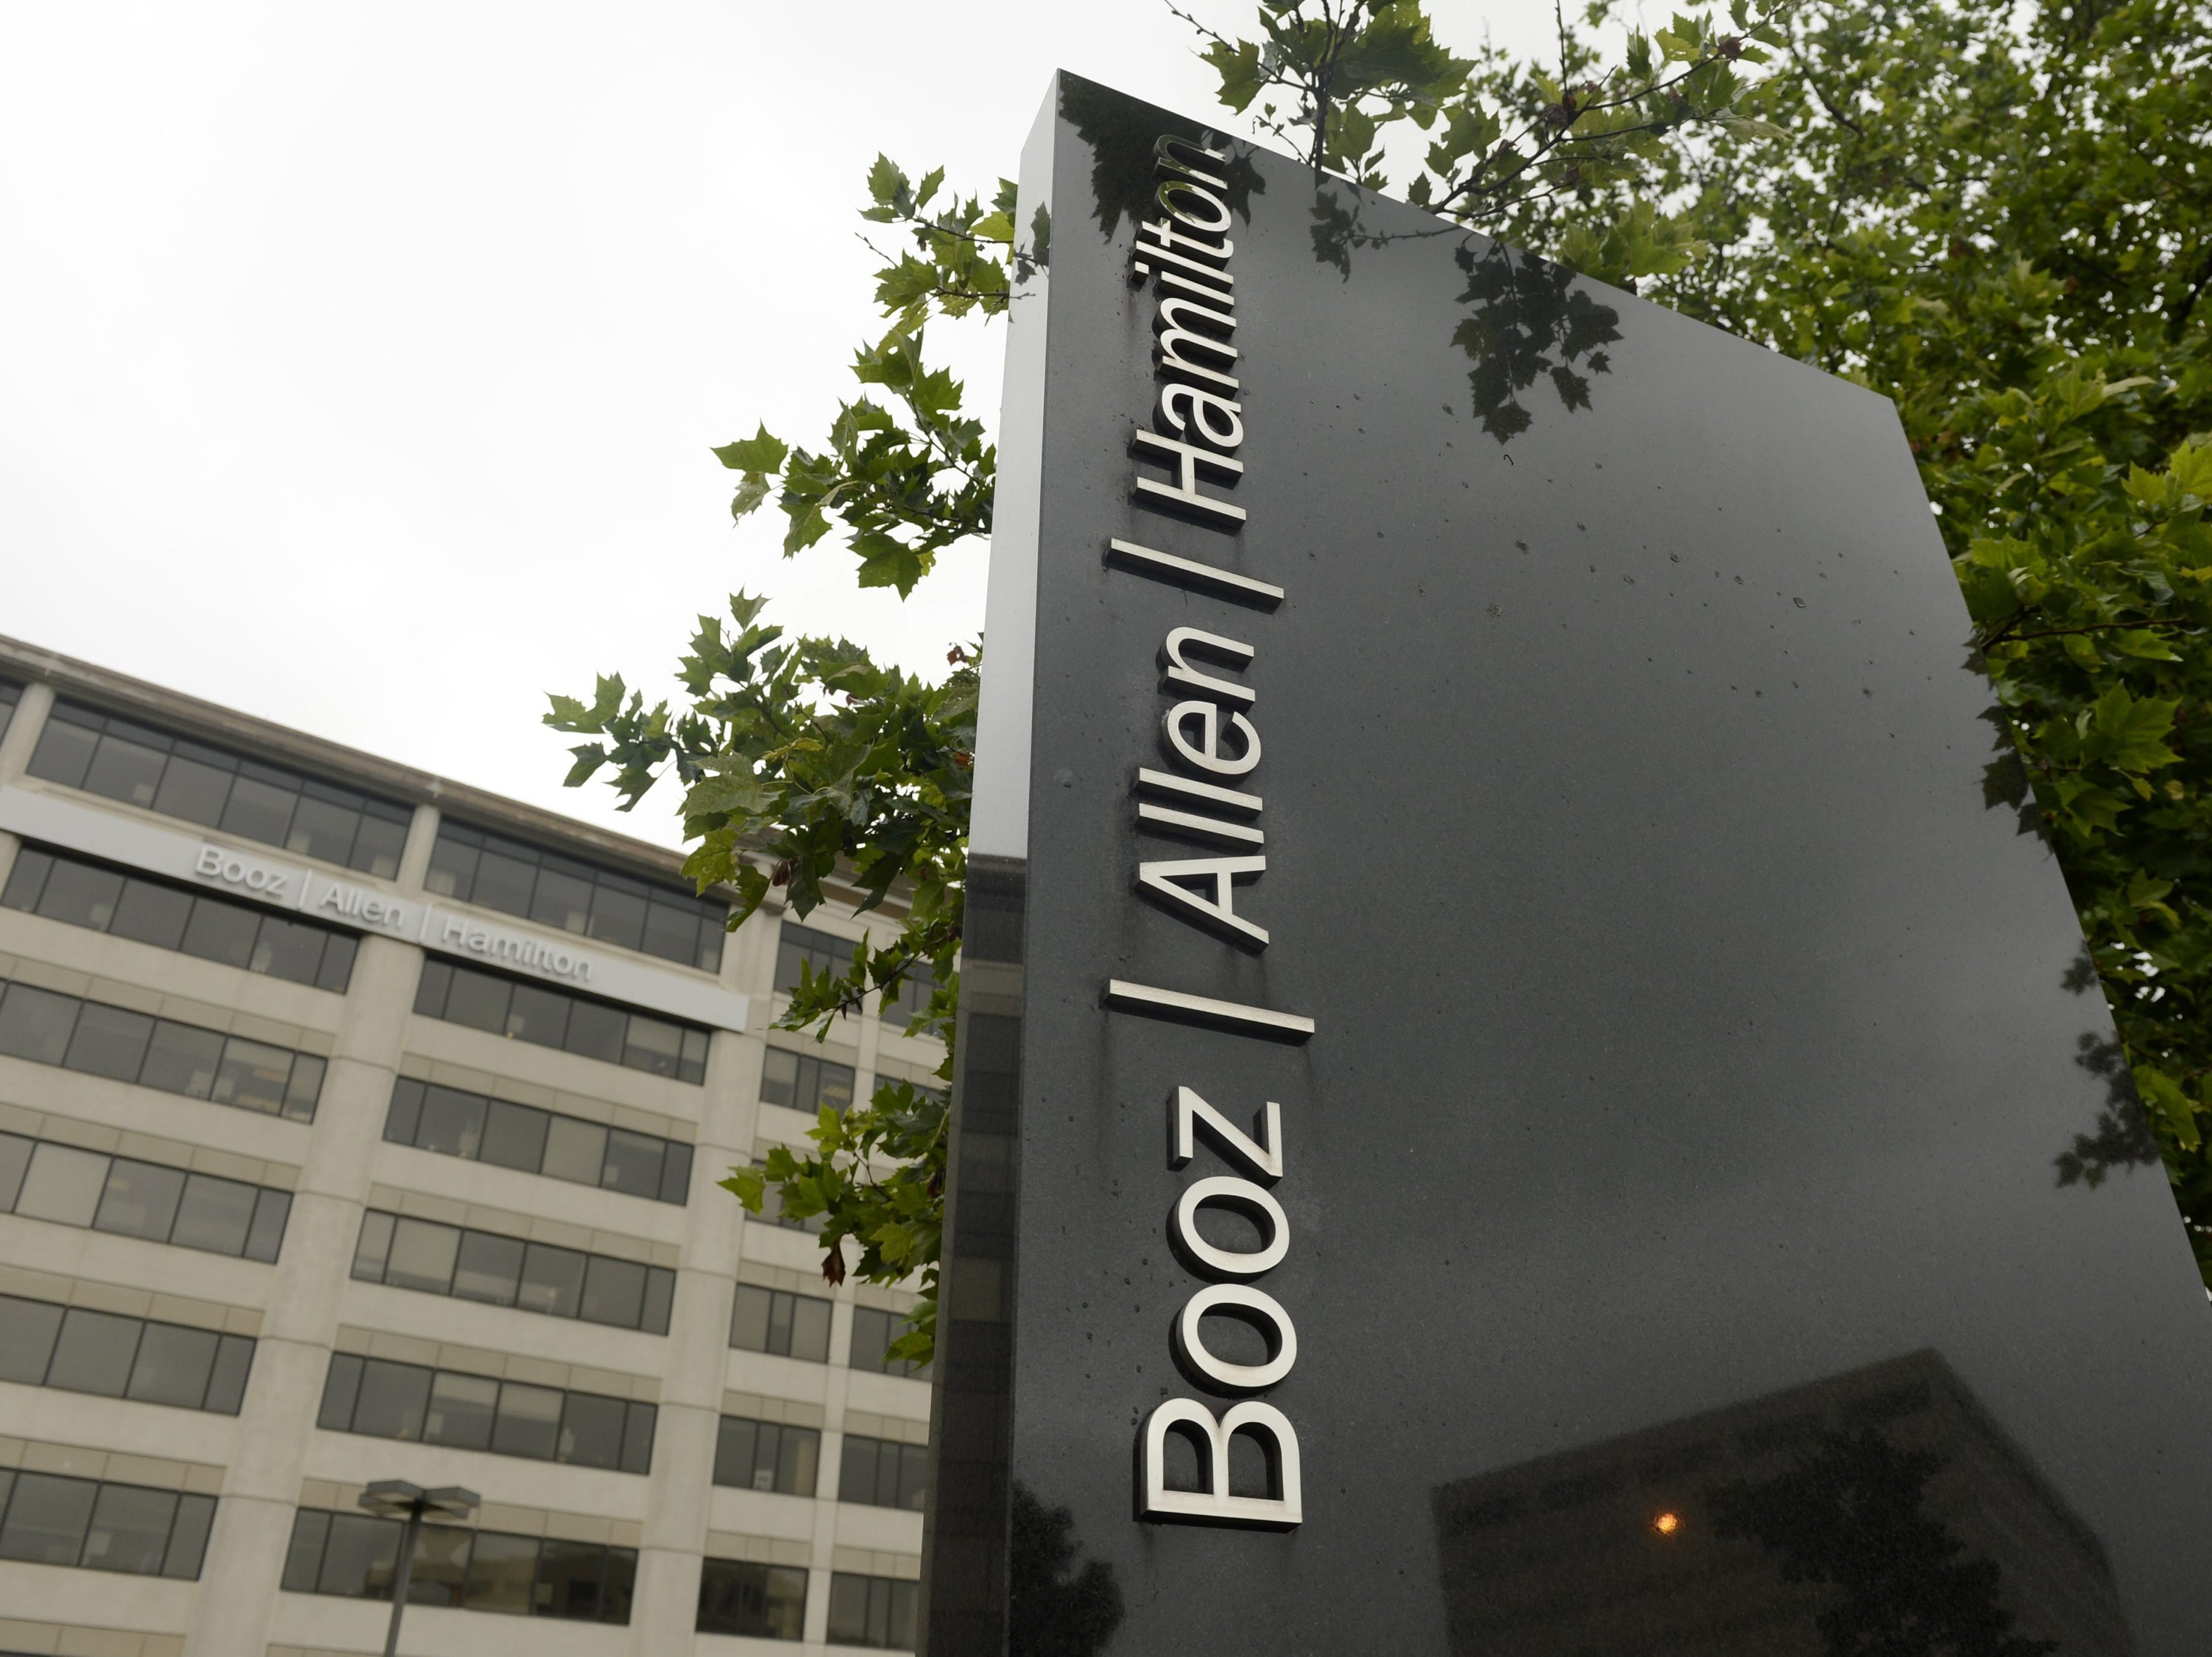 Booz Allen Hamilton provides management, technology, consulting, and engineering services to corporations and governments across the globe